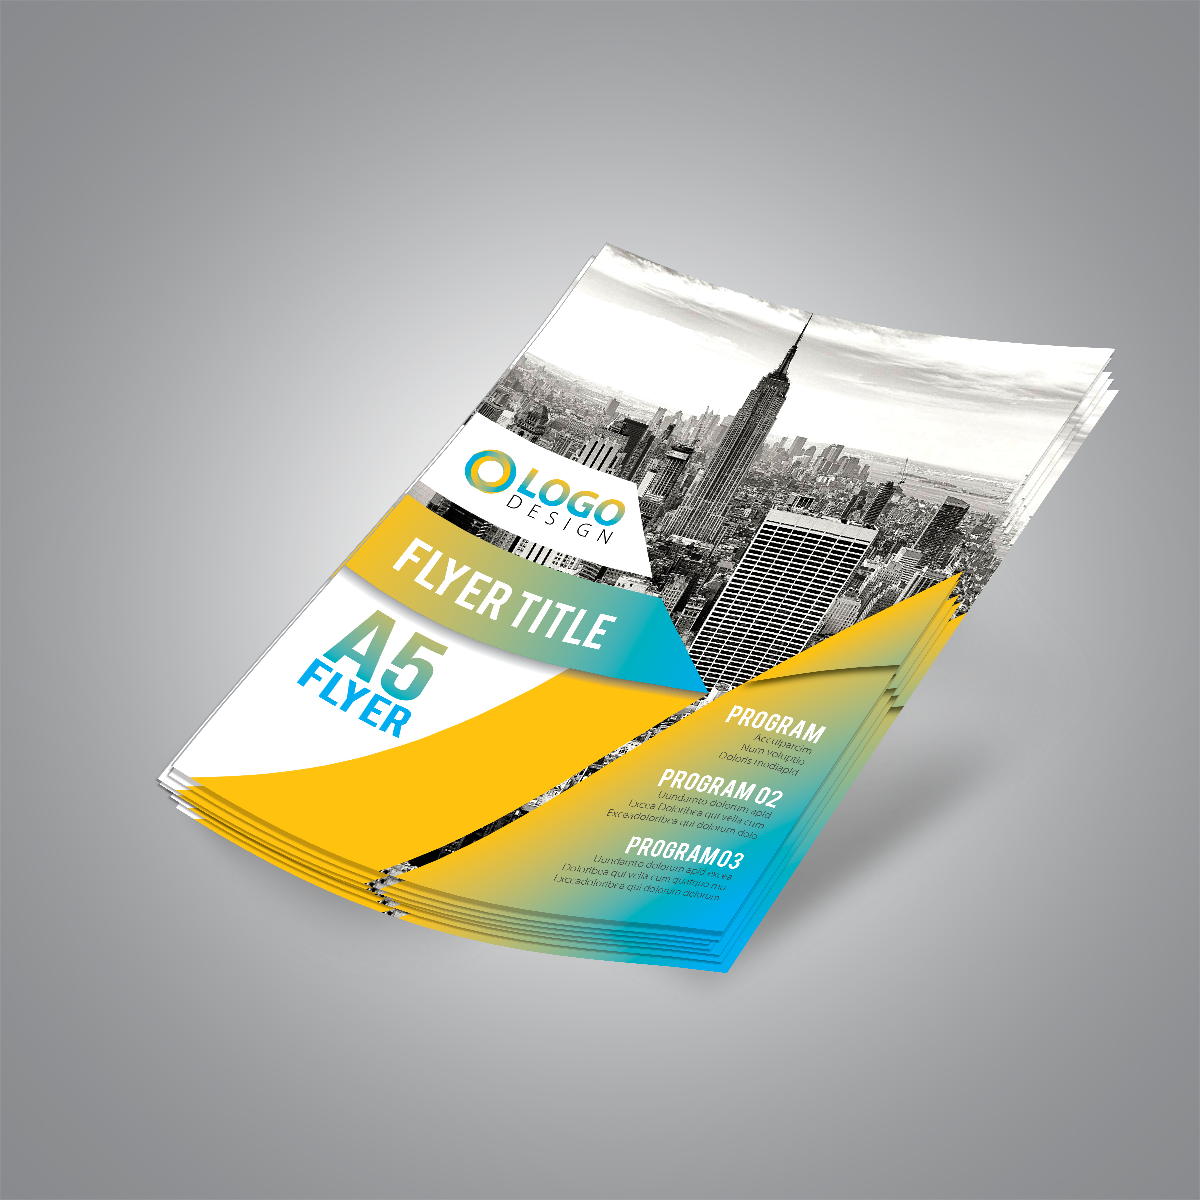 Business Card Banner Image collections - Free Business Cards